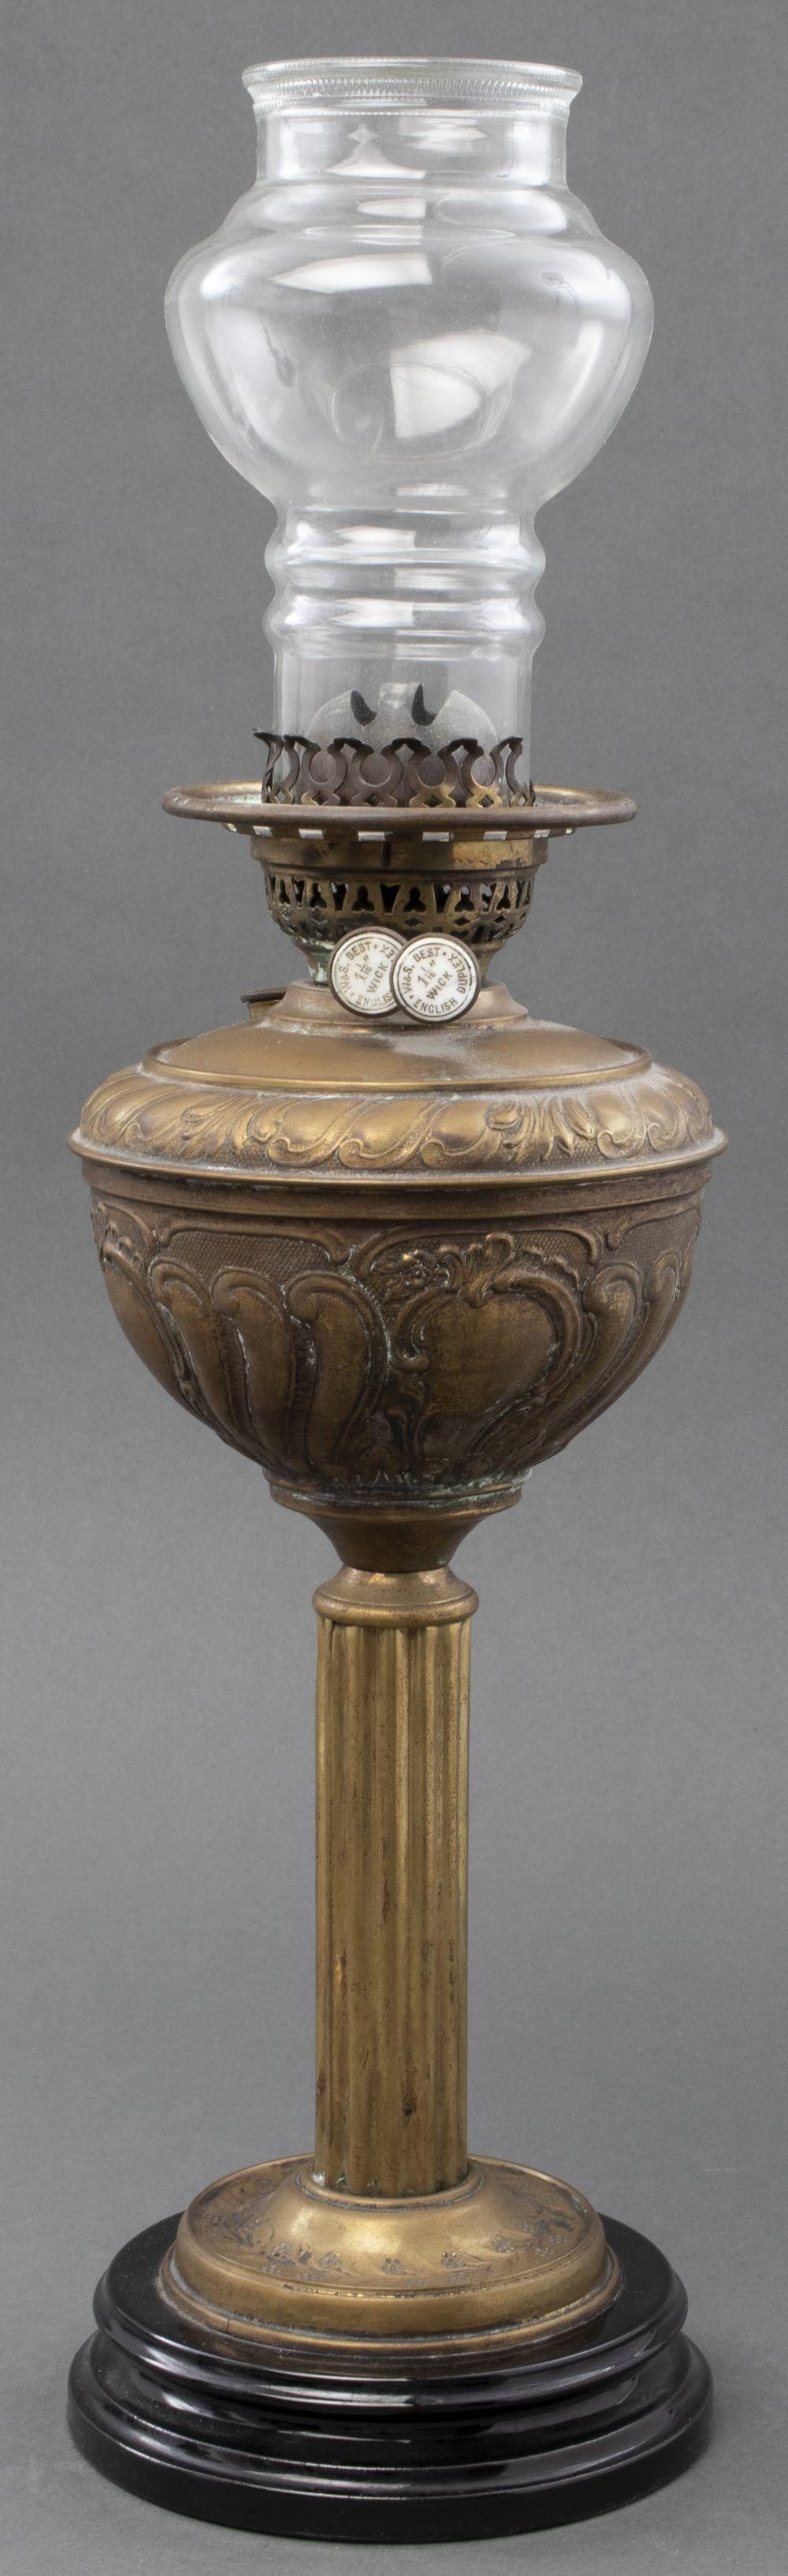 Victorian Gilt Metal And Clear Glass Parlor Lamp